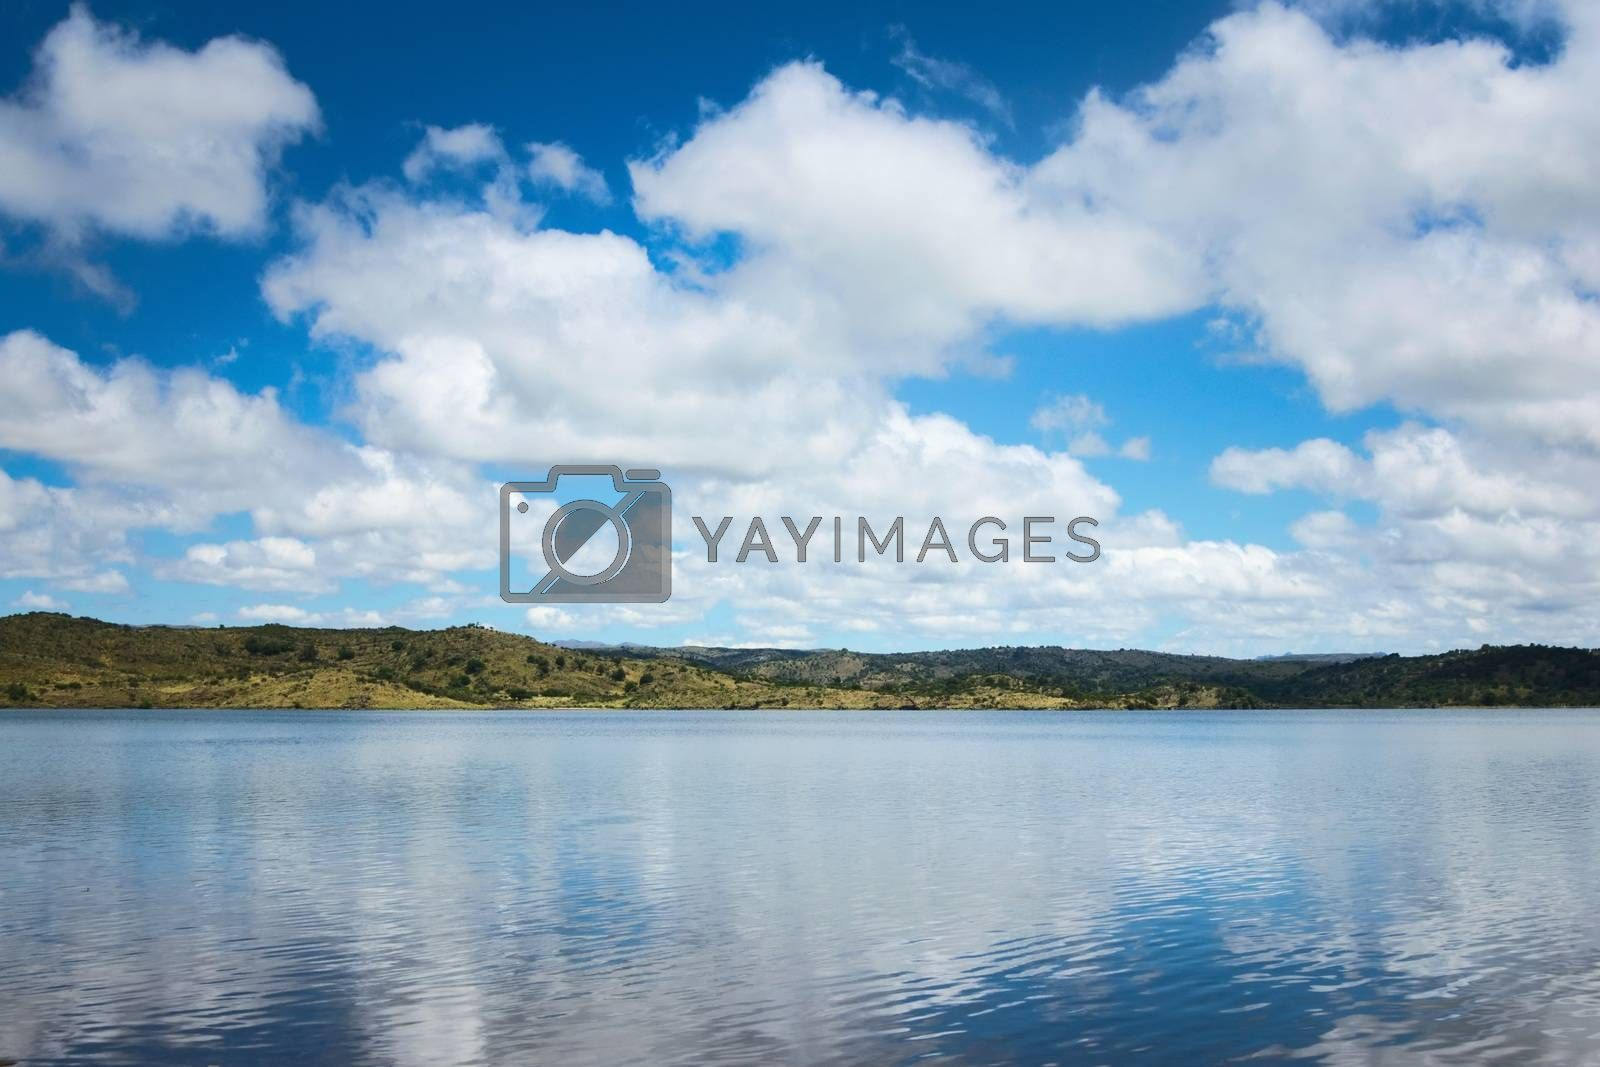 Royalty free image of Cumulus clouds reflected on the waters of a lake by hernan_hyper